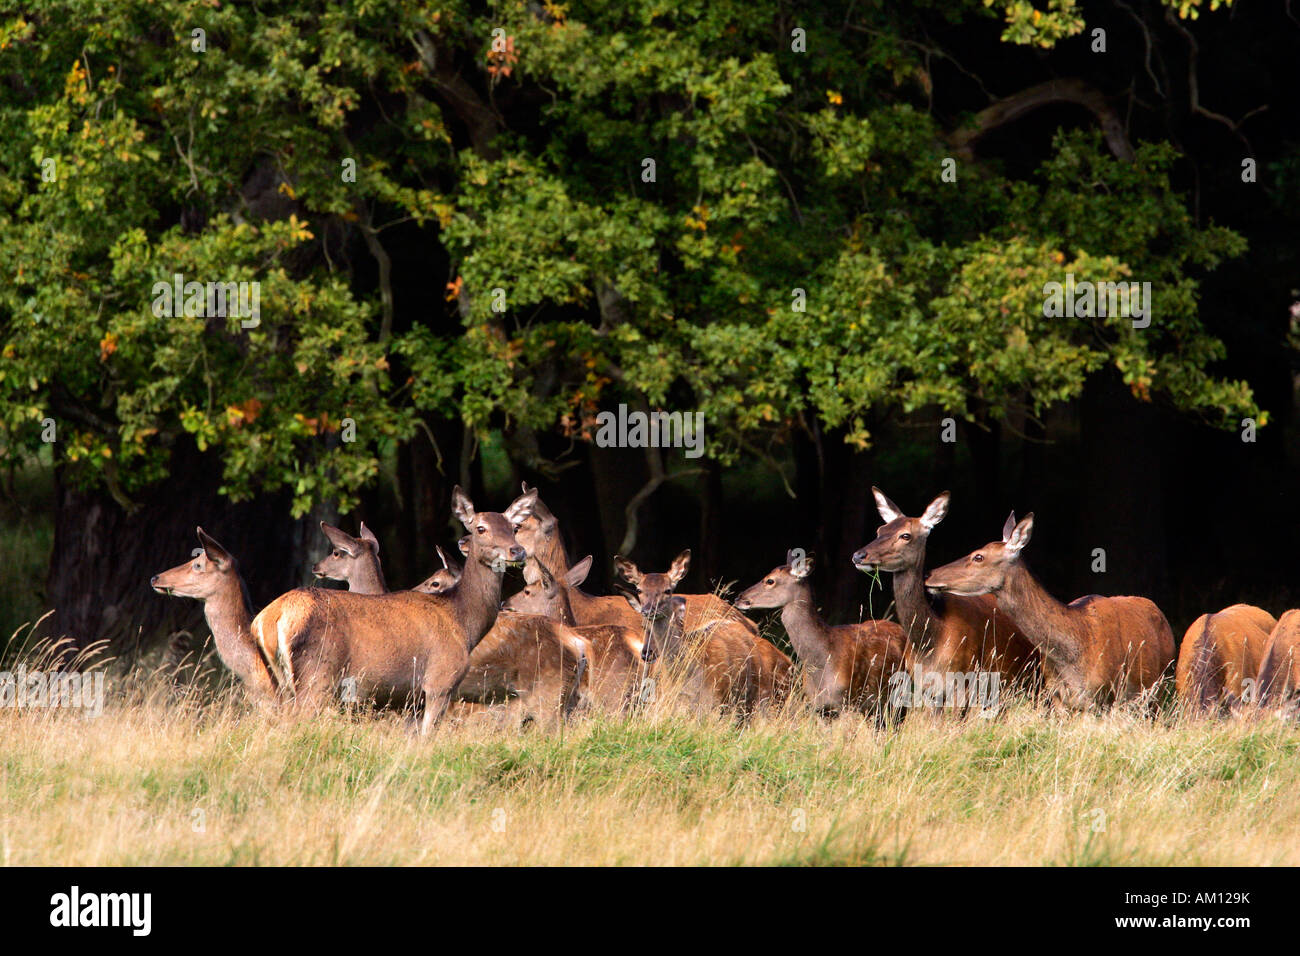 Watchful female red deers during the rut - pride of hinds at the border of a wood (Cervus elaphus) Stock Photo